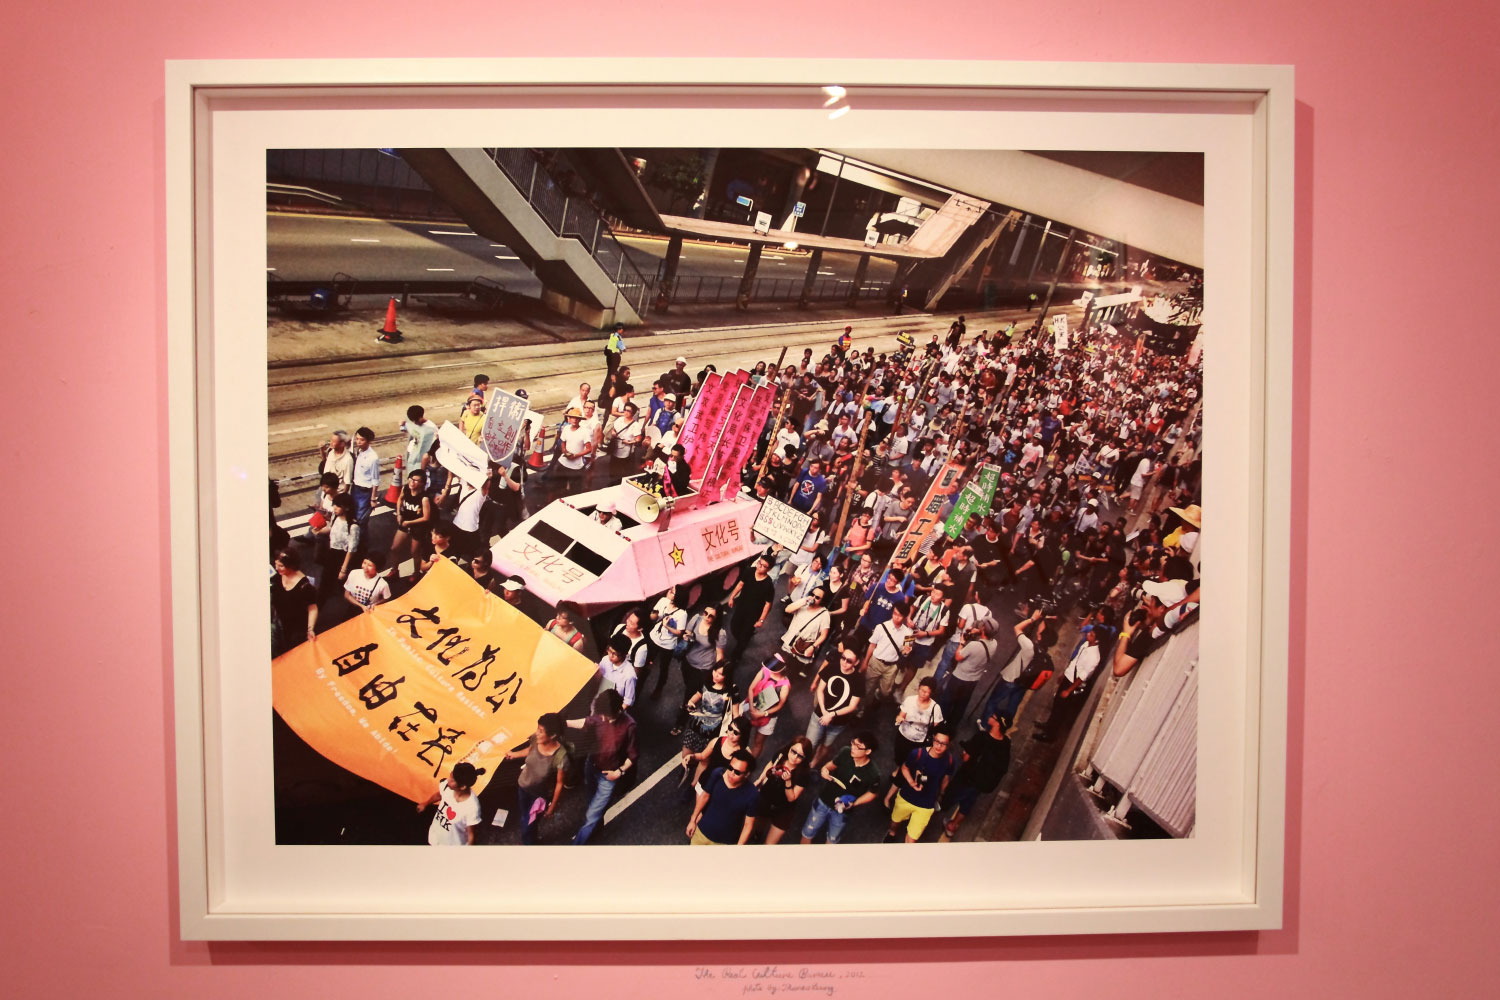 art-of-protest-resisting-against-absurity-by-kacey-wong-03.jpg